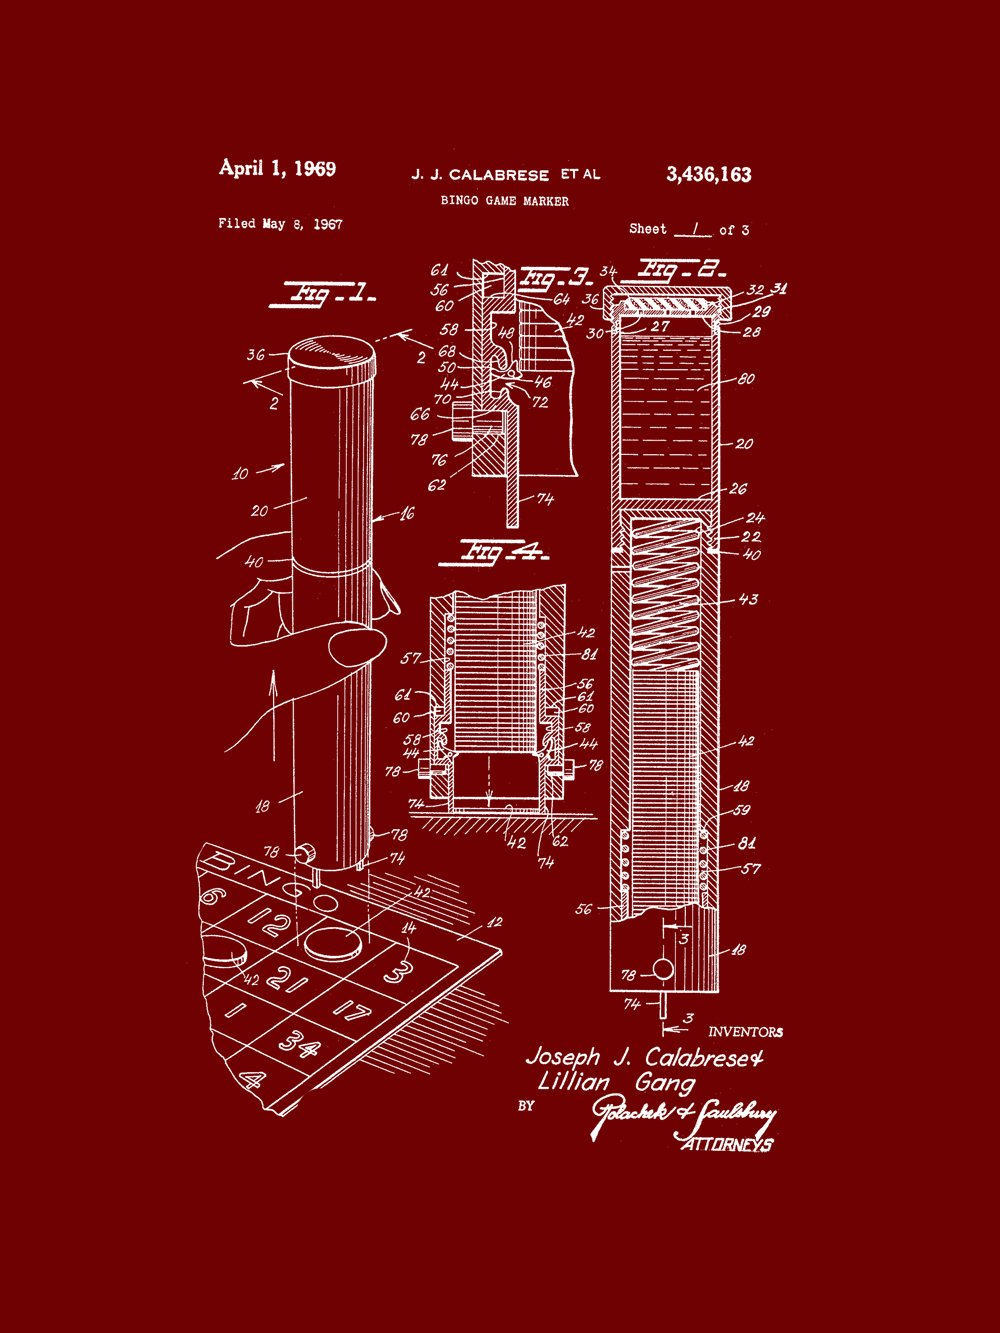 Framable Patent Art the Original Poster Art Print Bingo Night Family Game 18in by 24in Patent PAPSP104BR, Burgundy